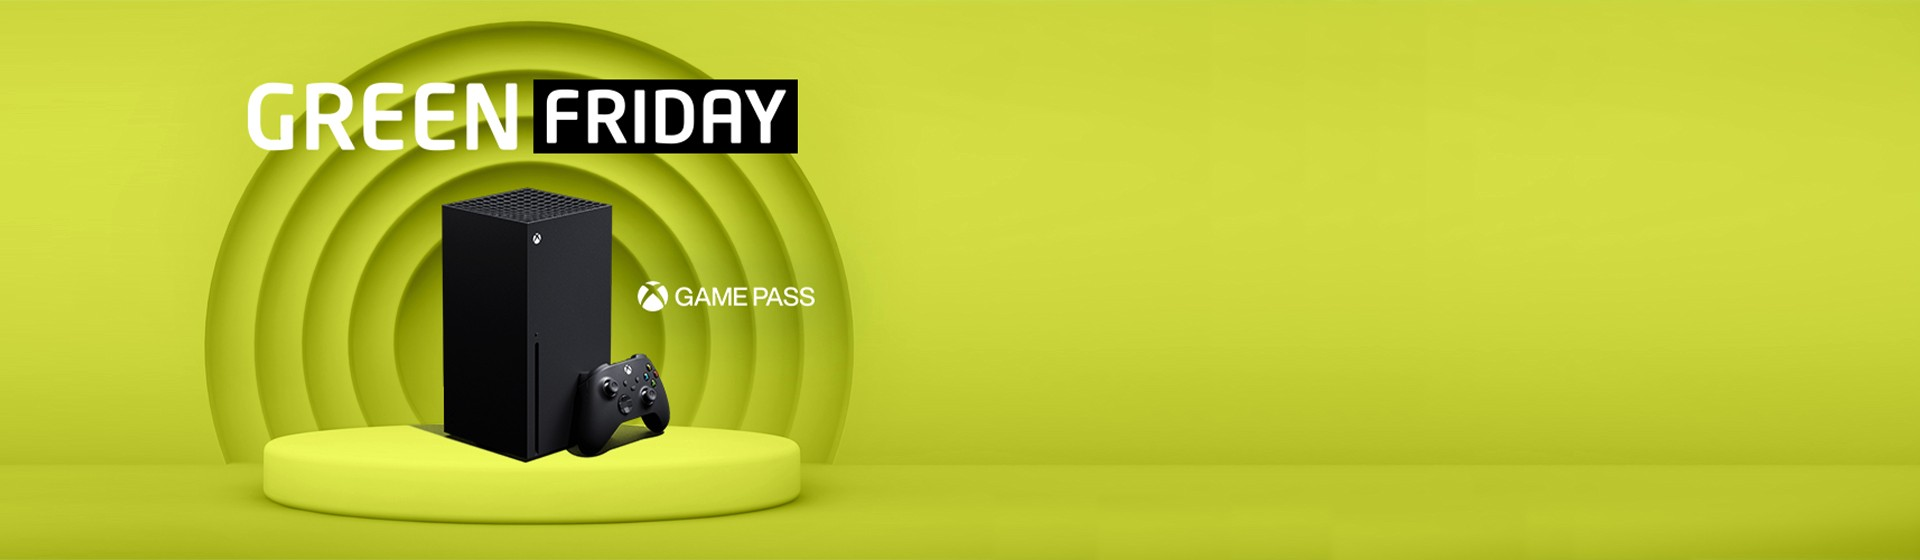 grean-friday-game-pass-1920x560